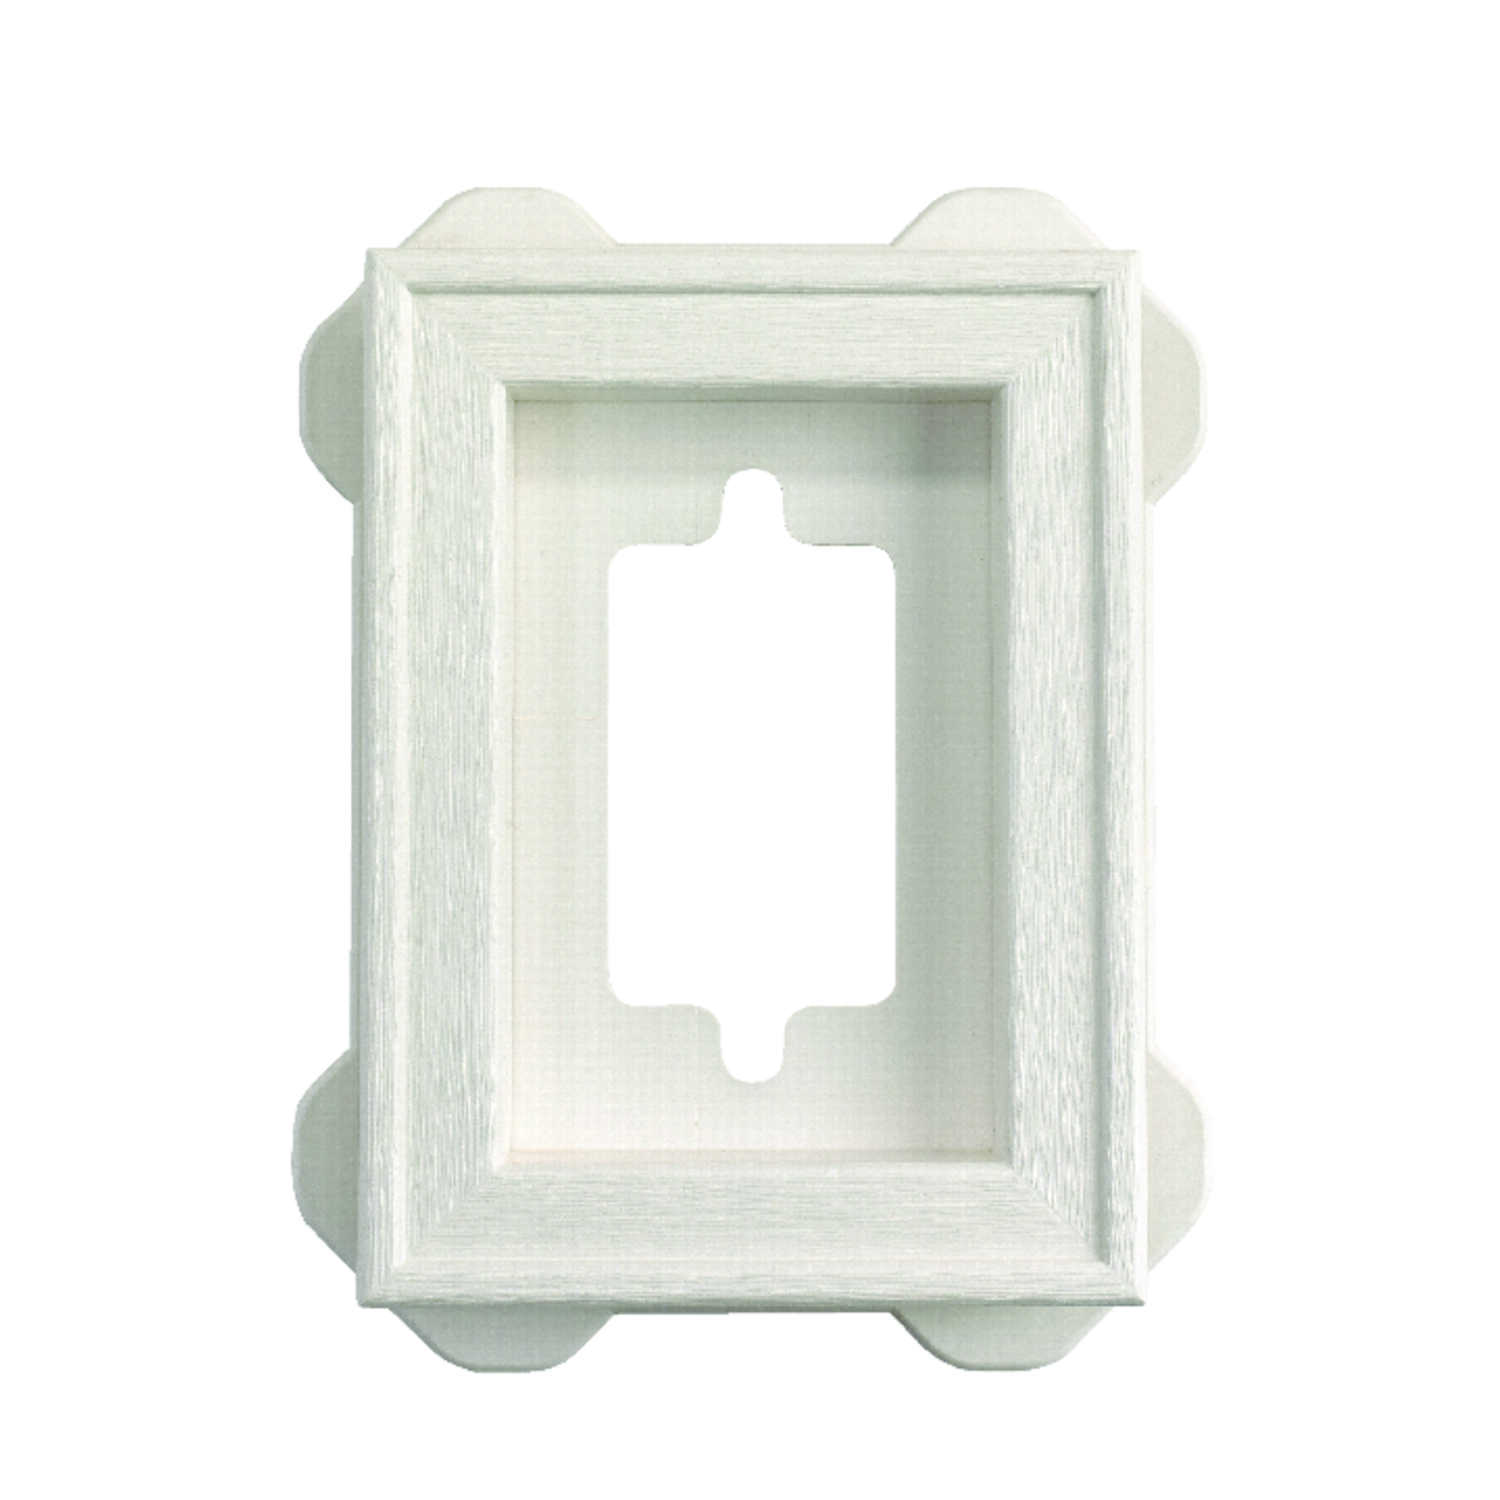 Builders Edge  6-5/16 in. L Prefinished  White  Copolymer  Mounting Block